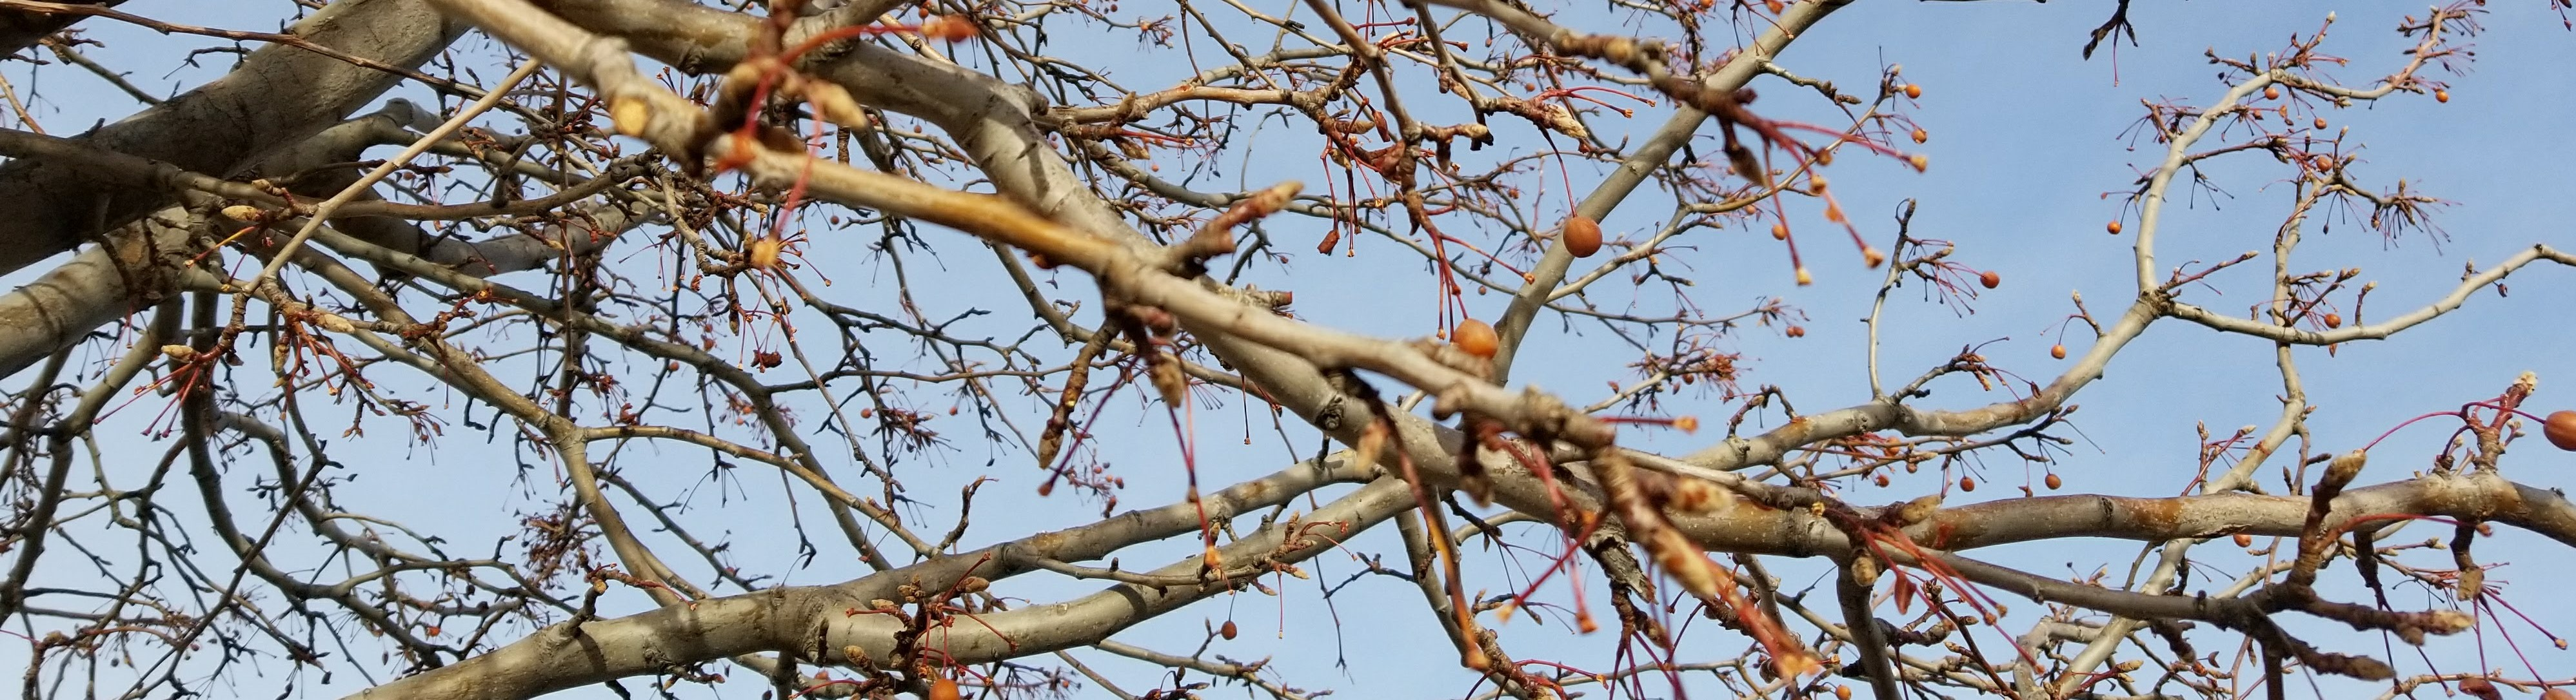 Bare tree branches beginning to bud in the spring